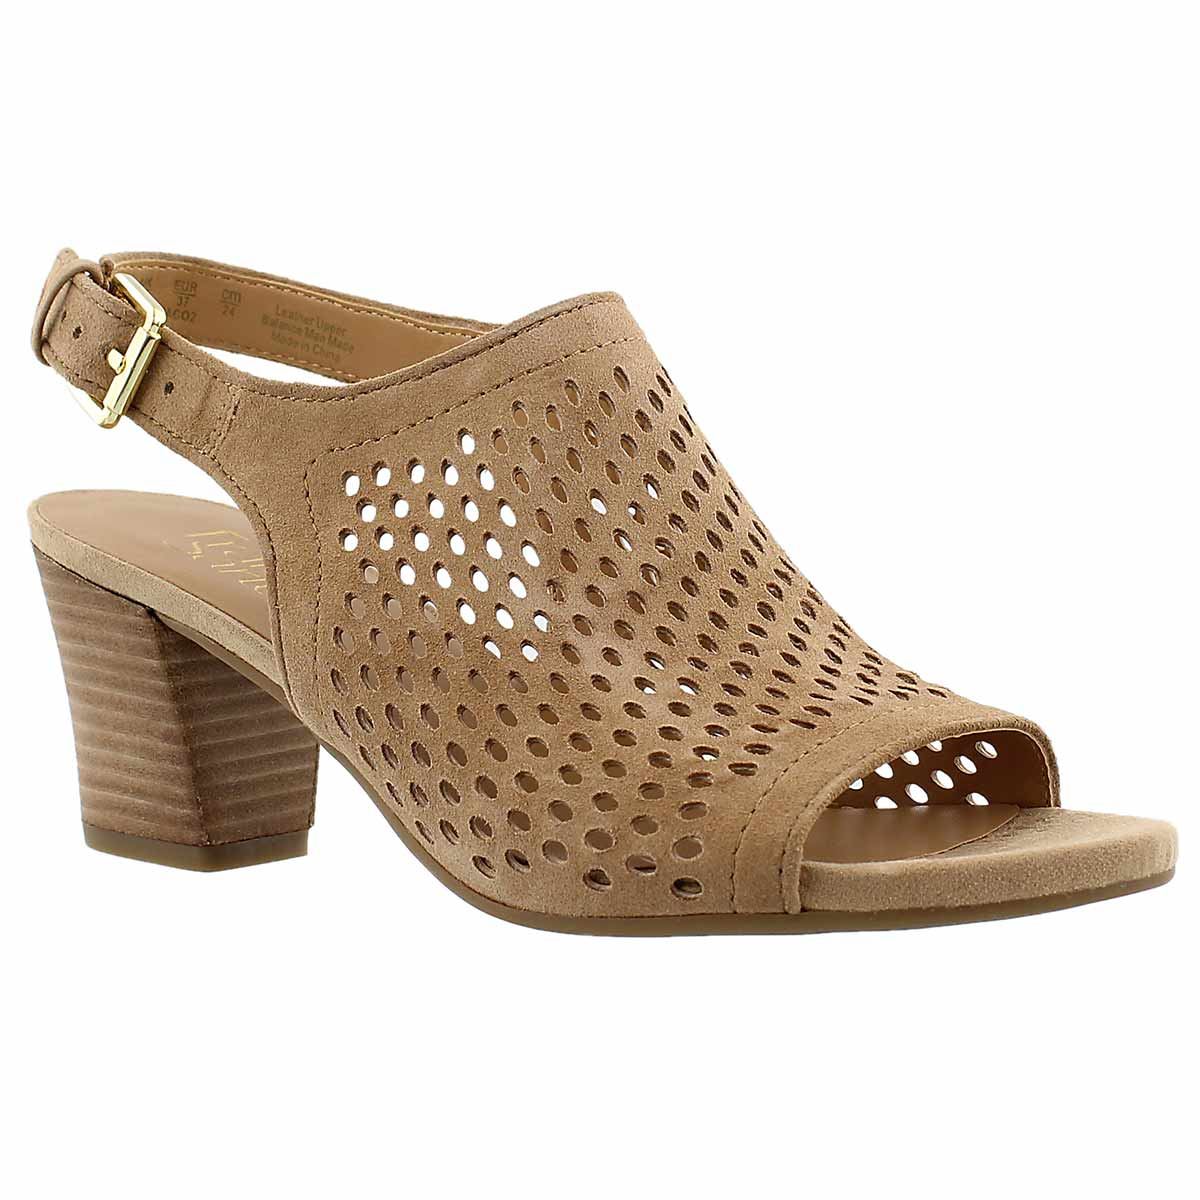 Women's MONACO 2 taupe perforated dress sandals